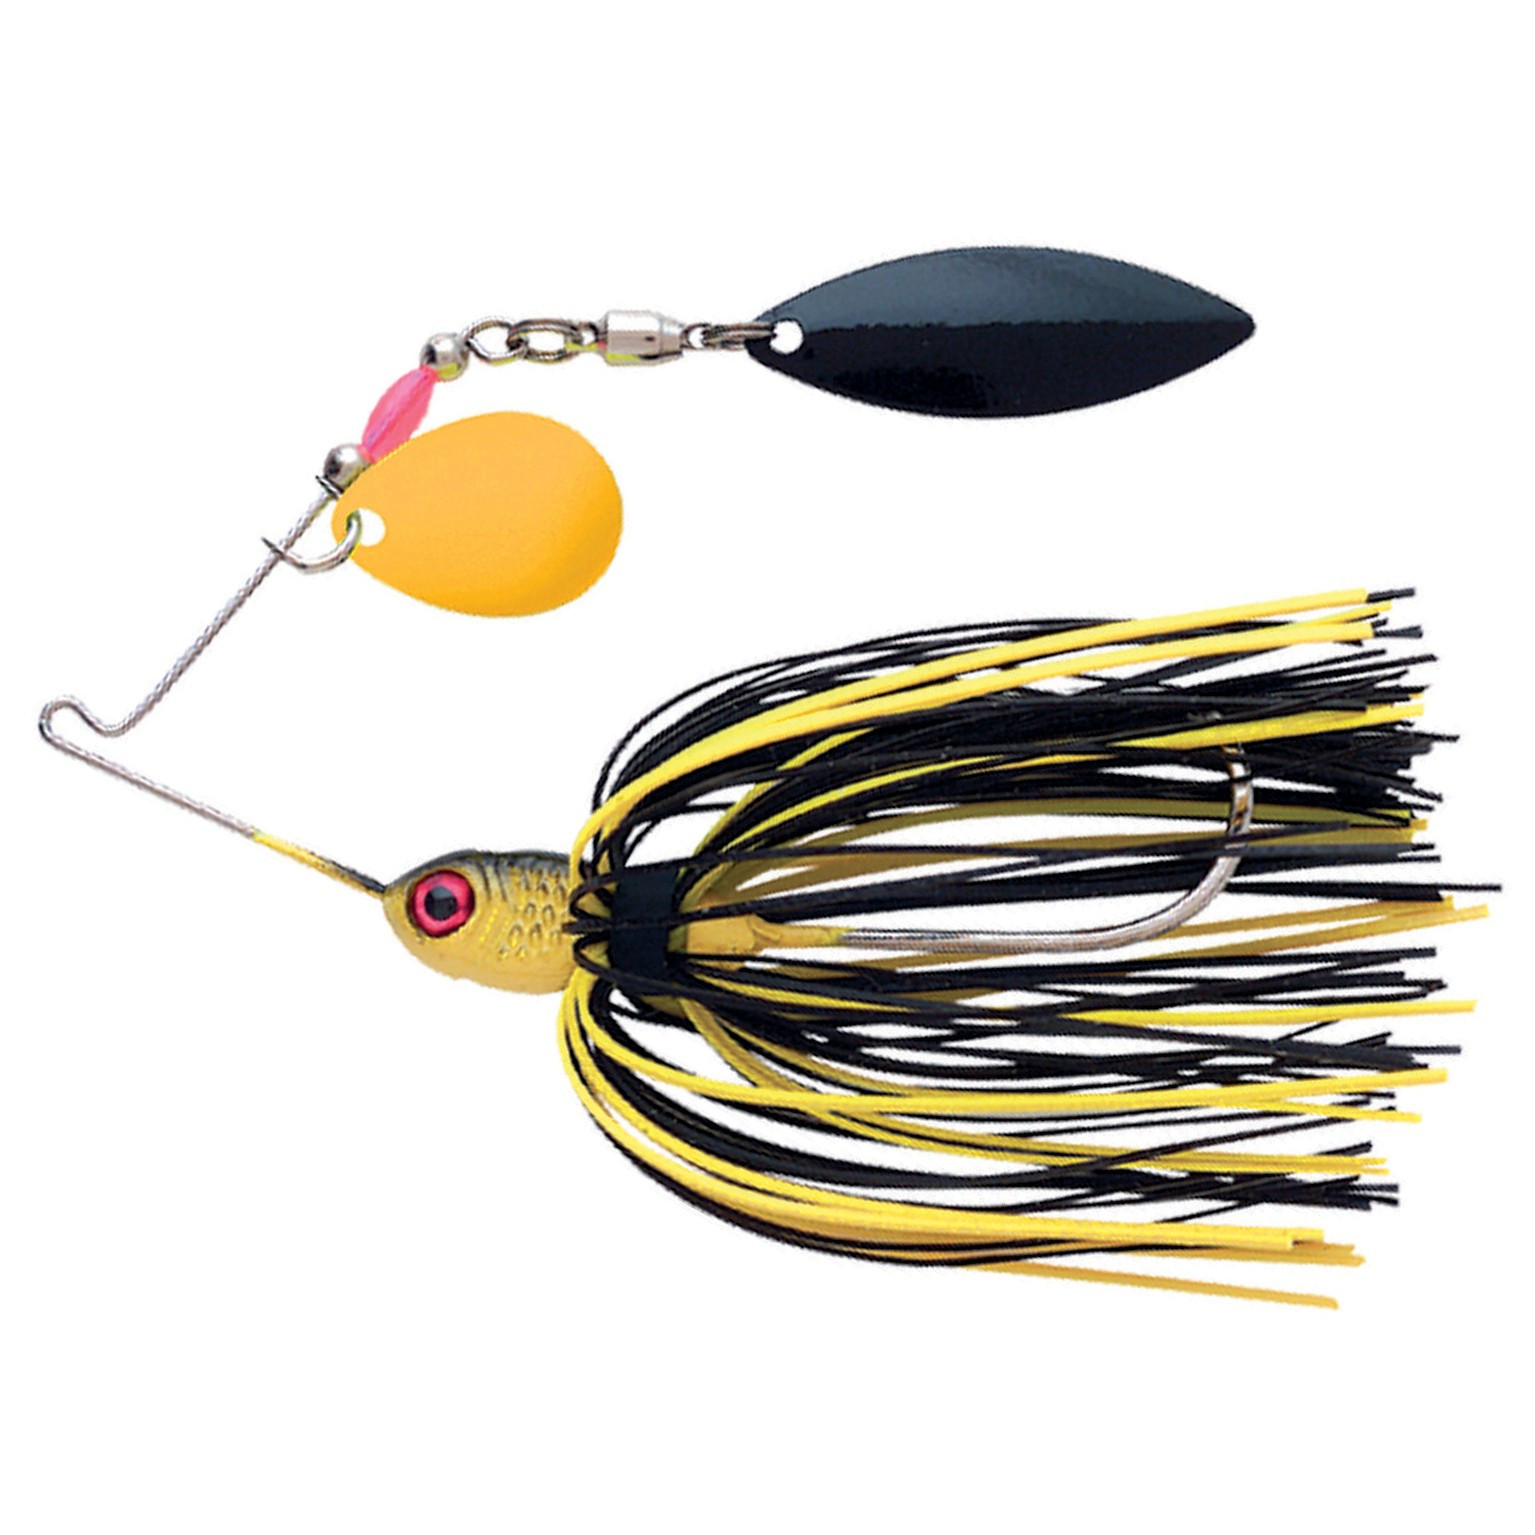 SPINNERBAIT BOOYAH POND MAGIC 5 gr